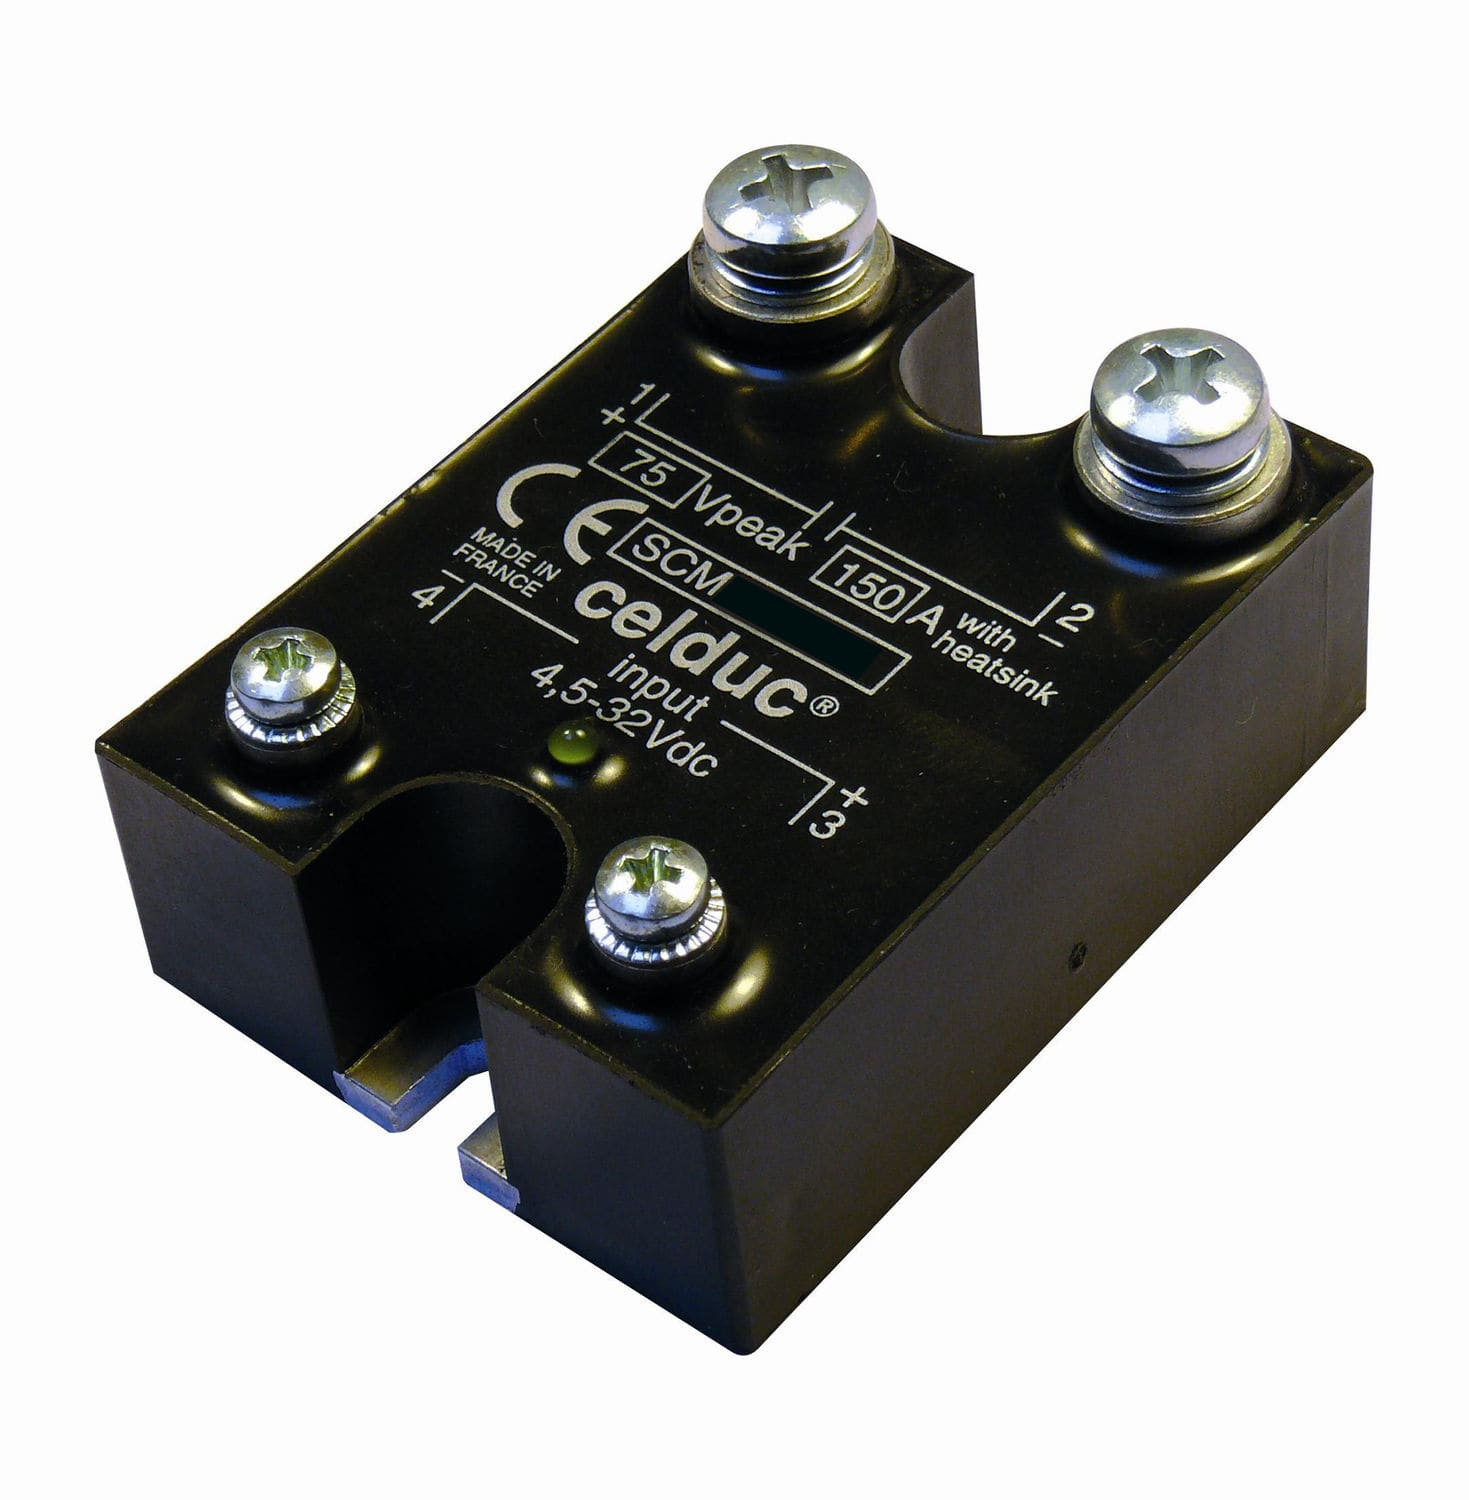 Mosfet Solid State Relay High Frequency Power Panel Mount Scm Series